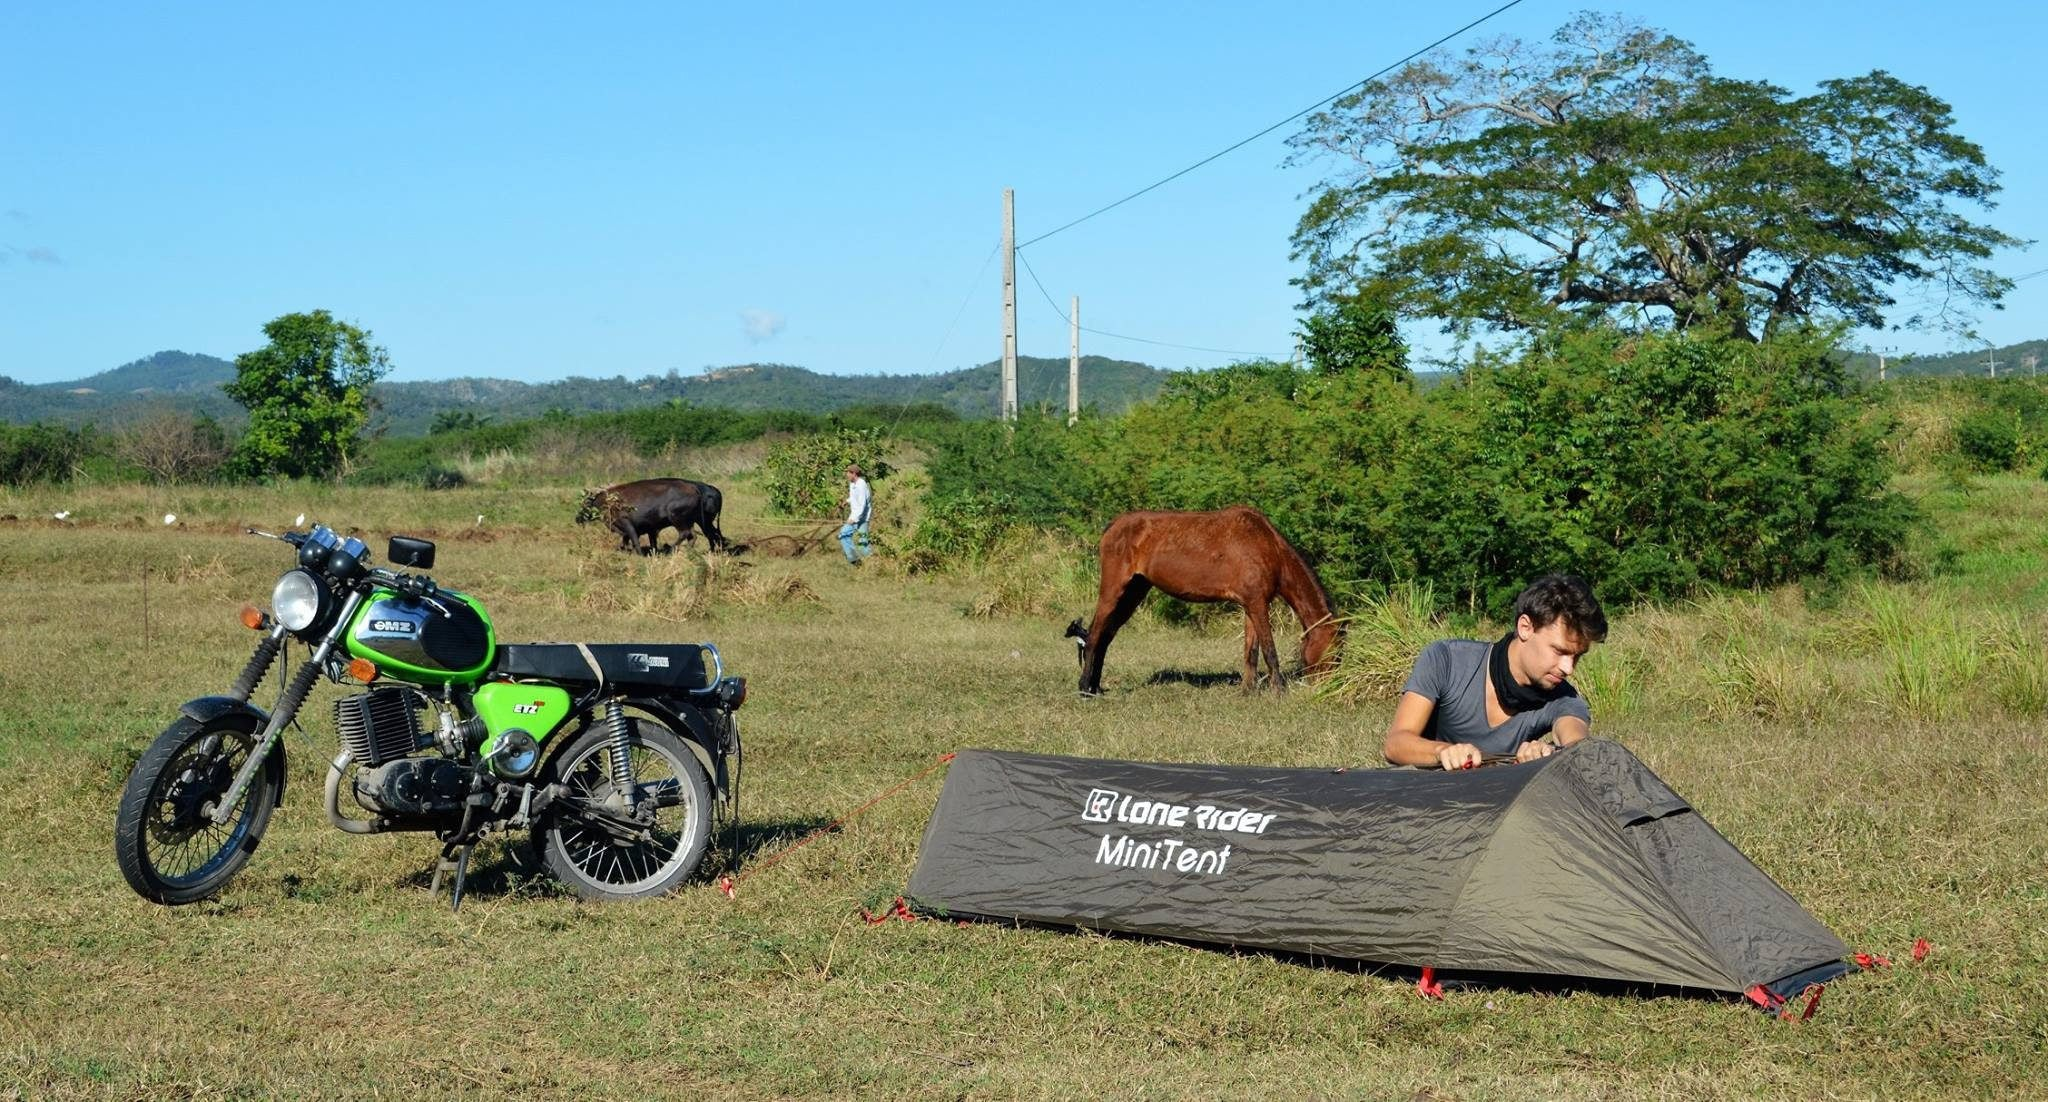 ... MiniTent - Lone Rider - Motorcycle Tent and C&ing Expert ... & MiniTent   Lone Rider   Lone Rider